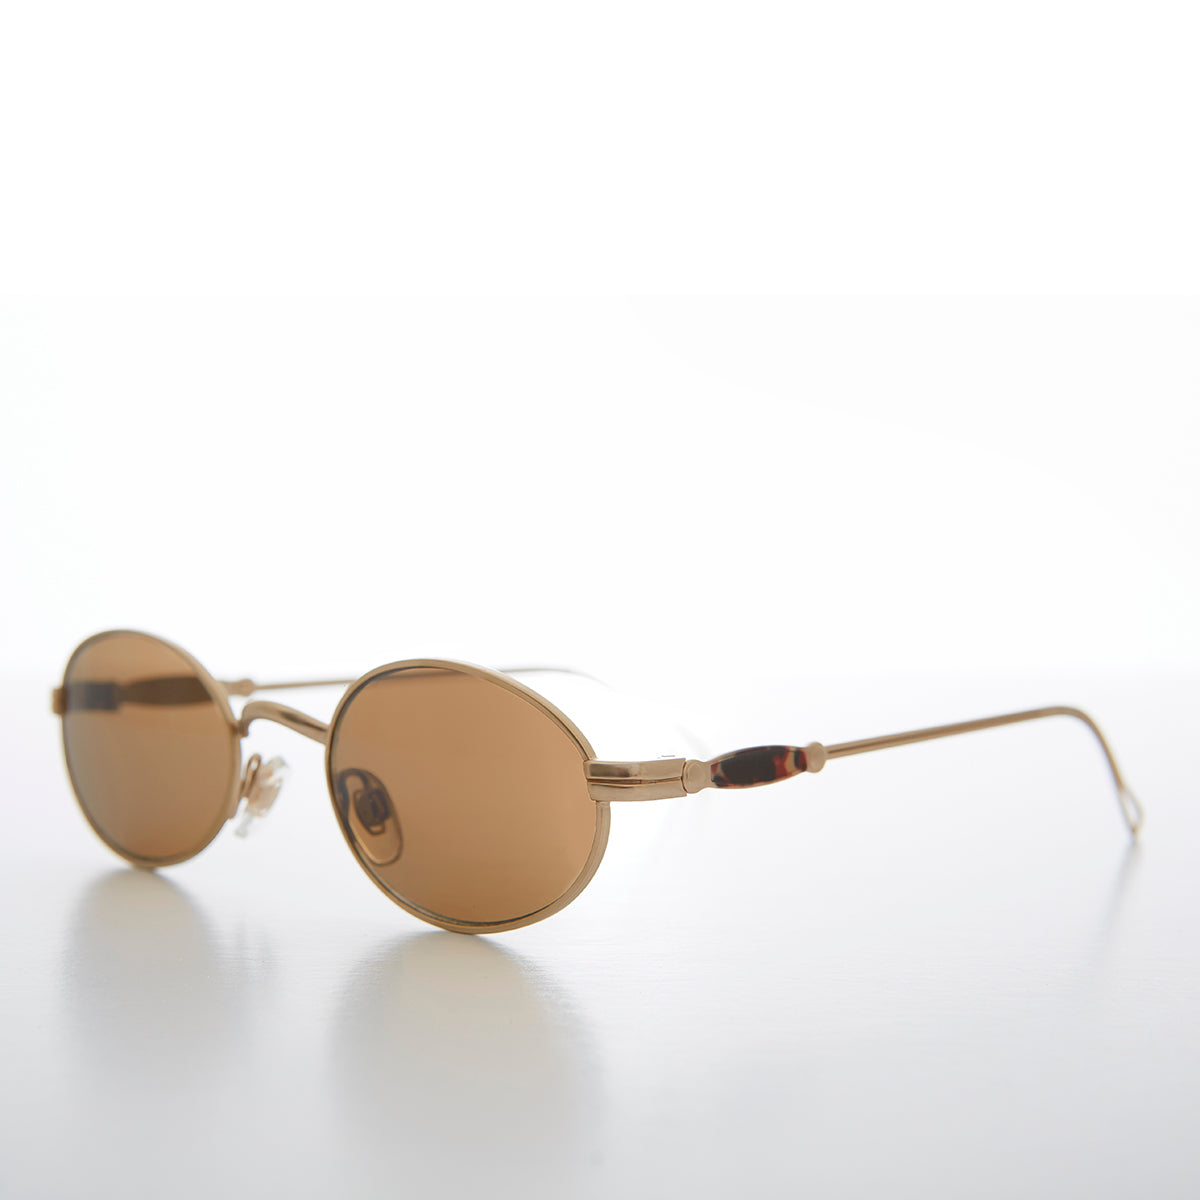 Oval 90s Vintage Sunglass with Intricate Temple